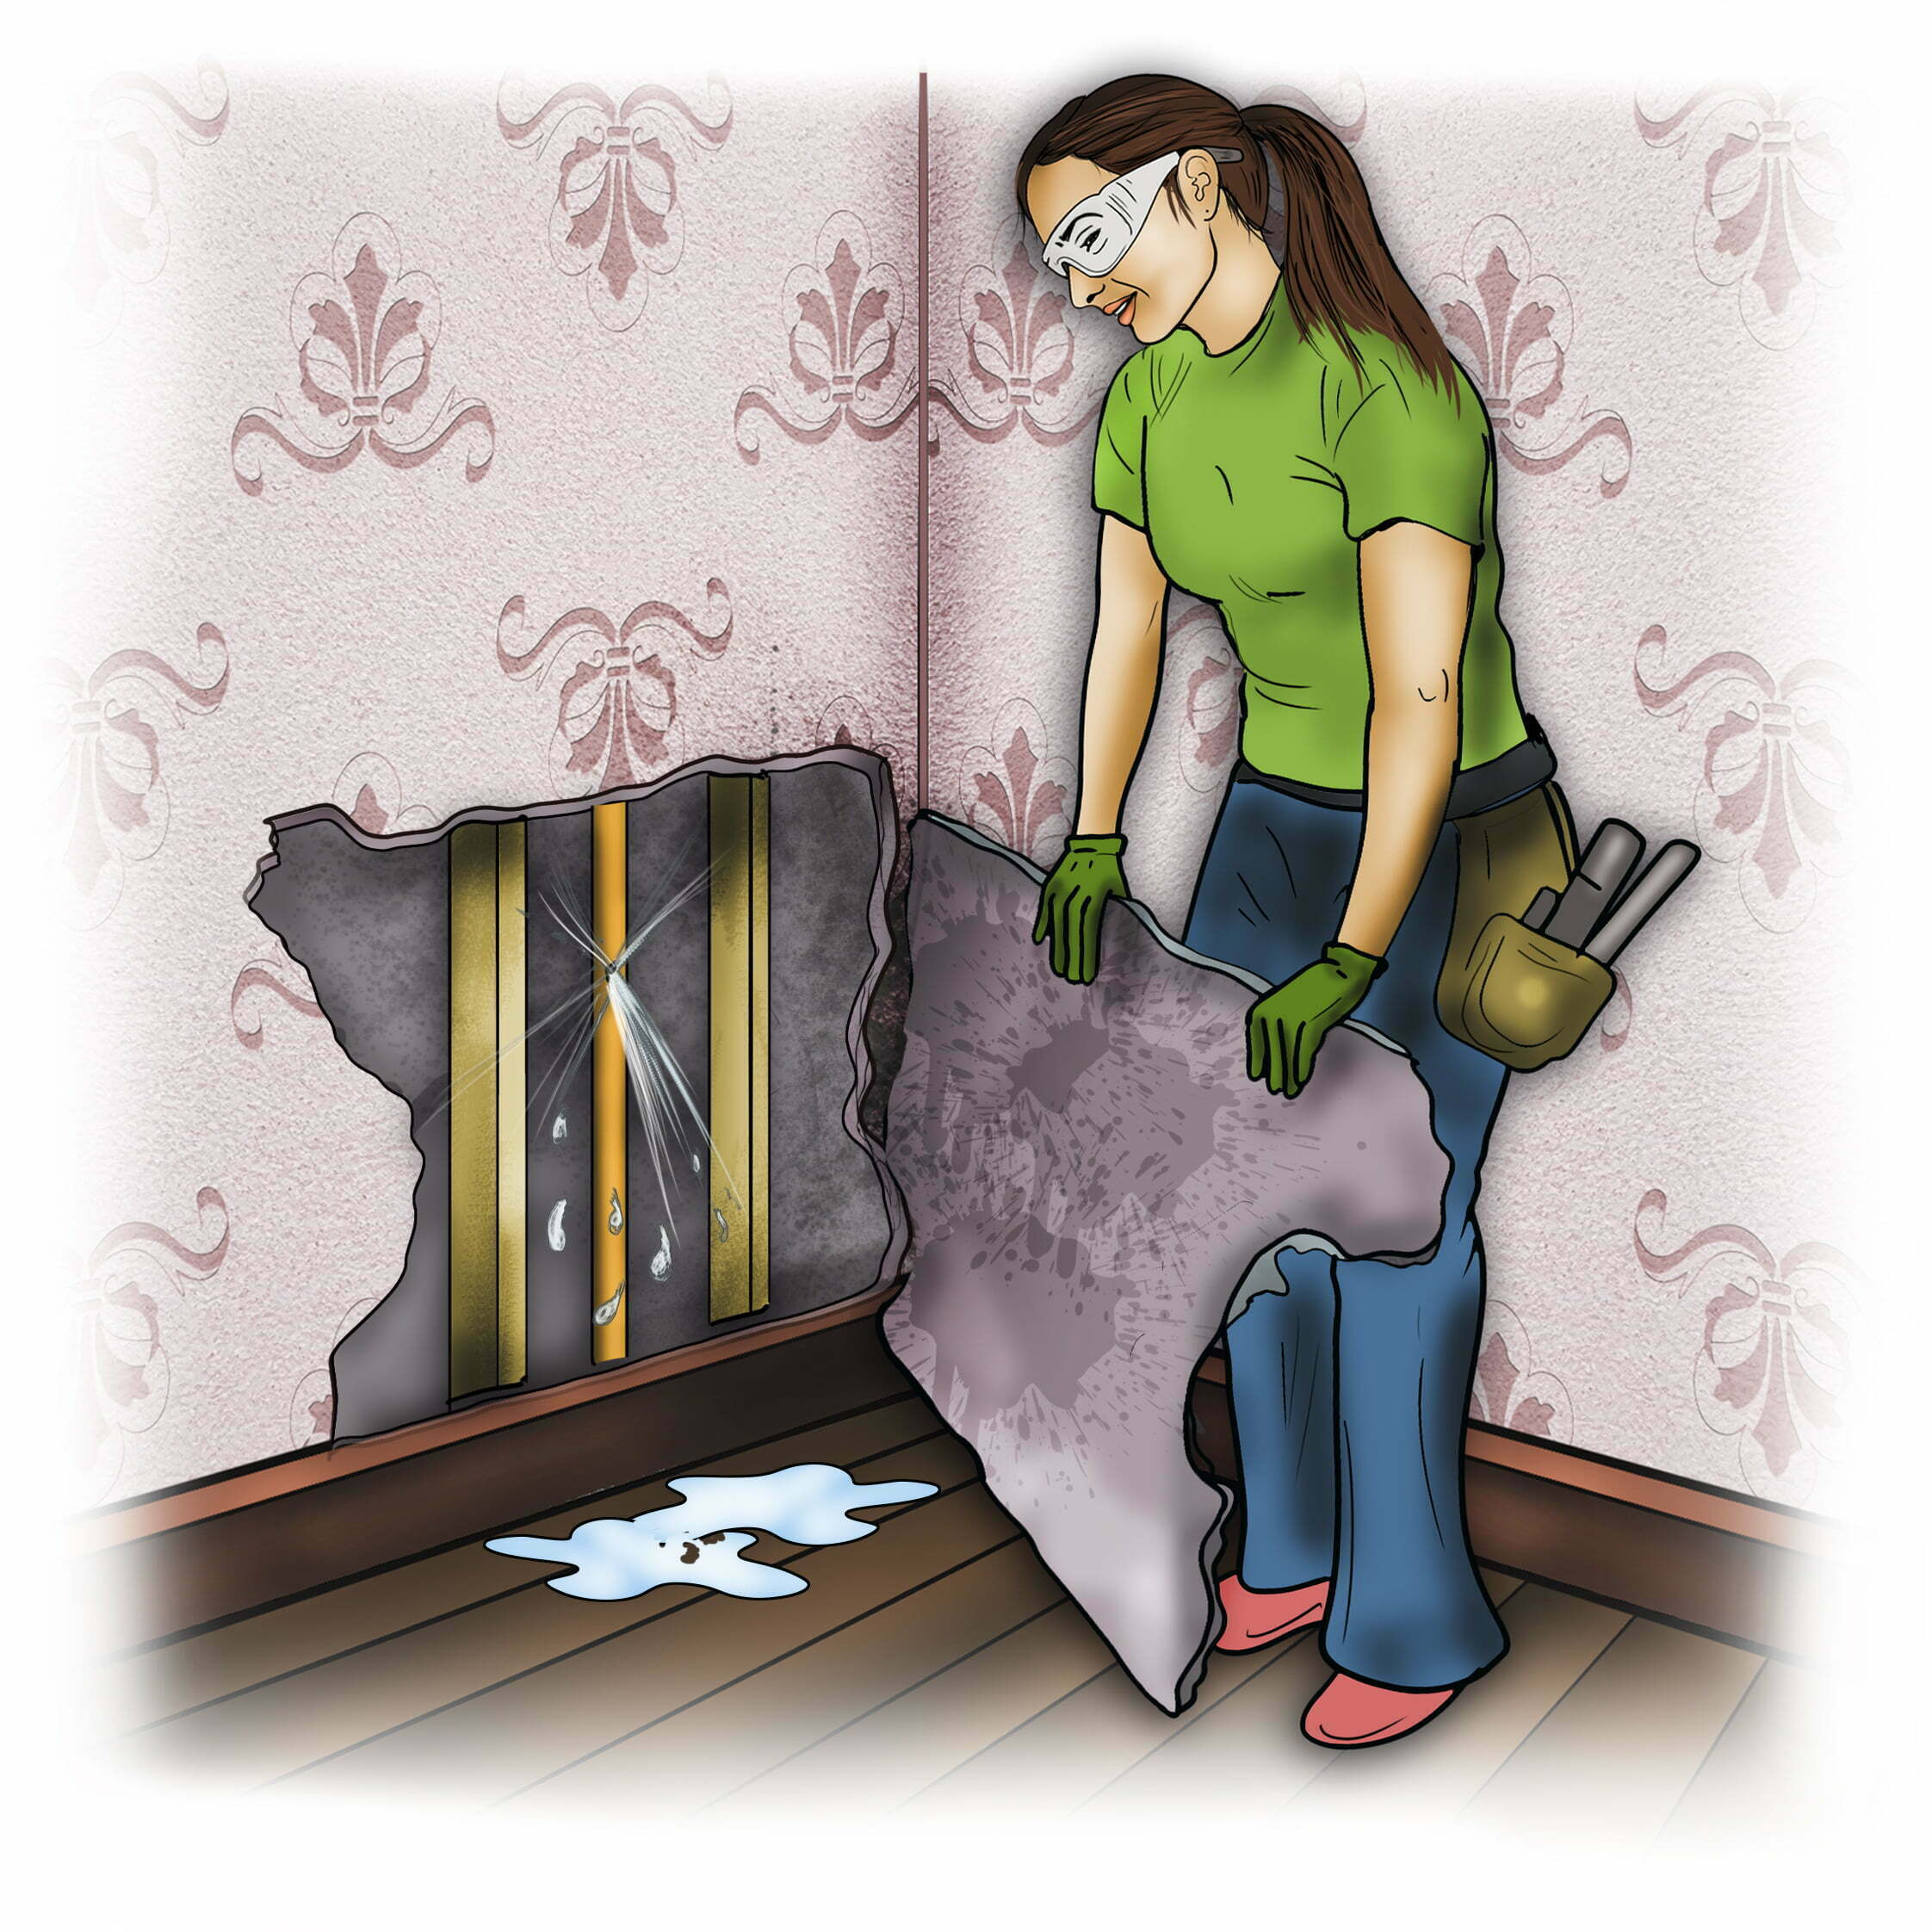 Remove damaged areas of a wall so there are no long-term issues